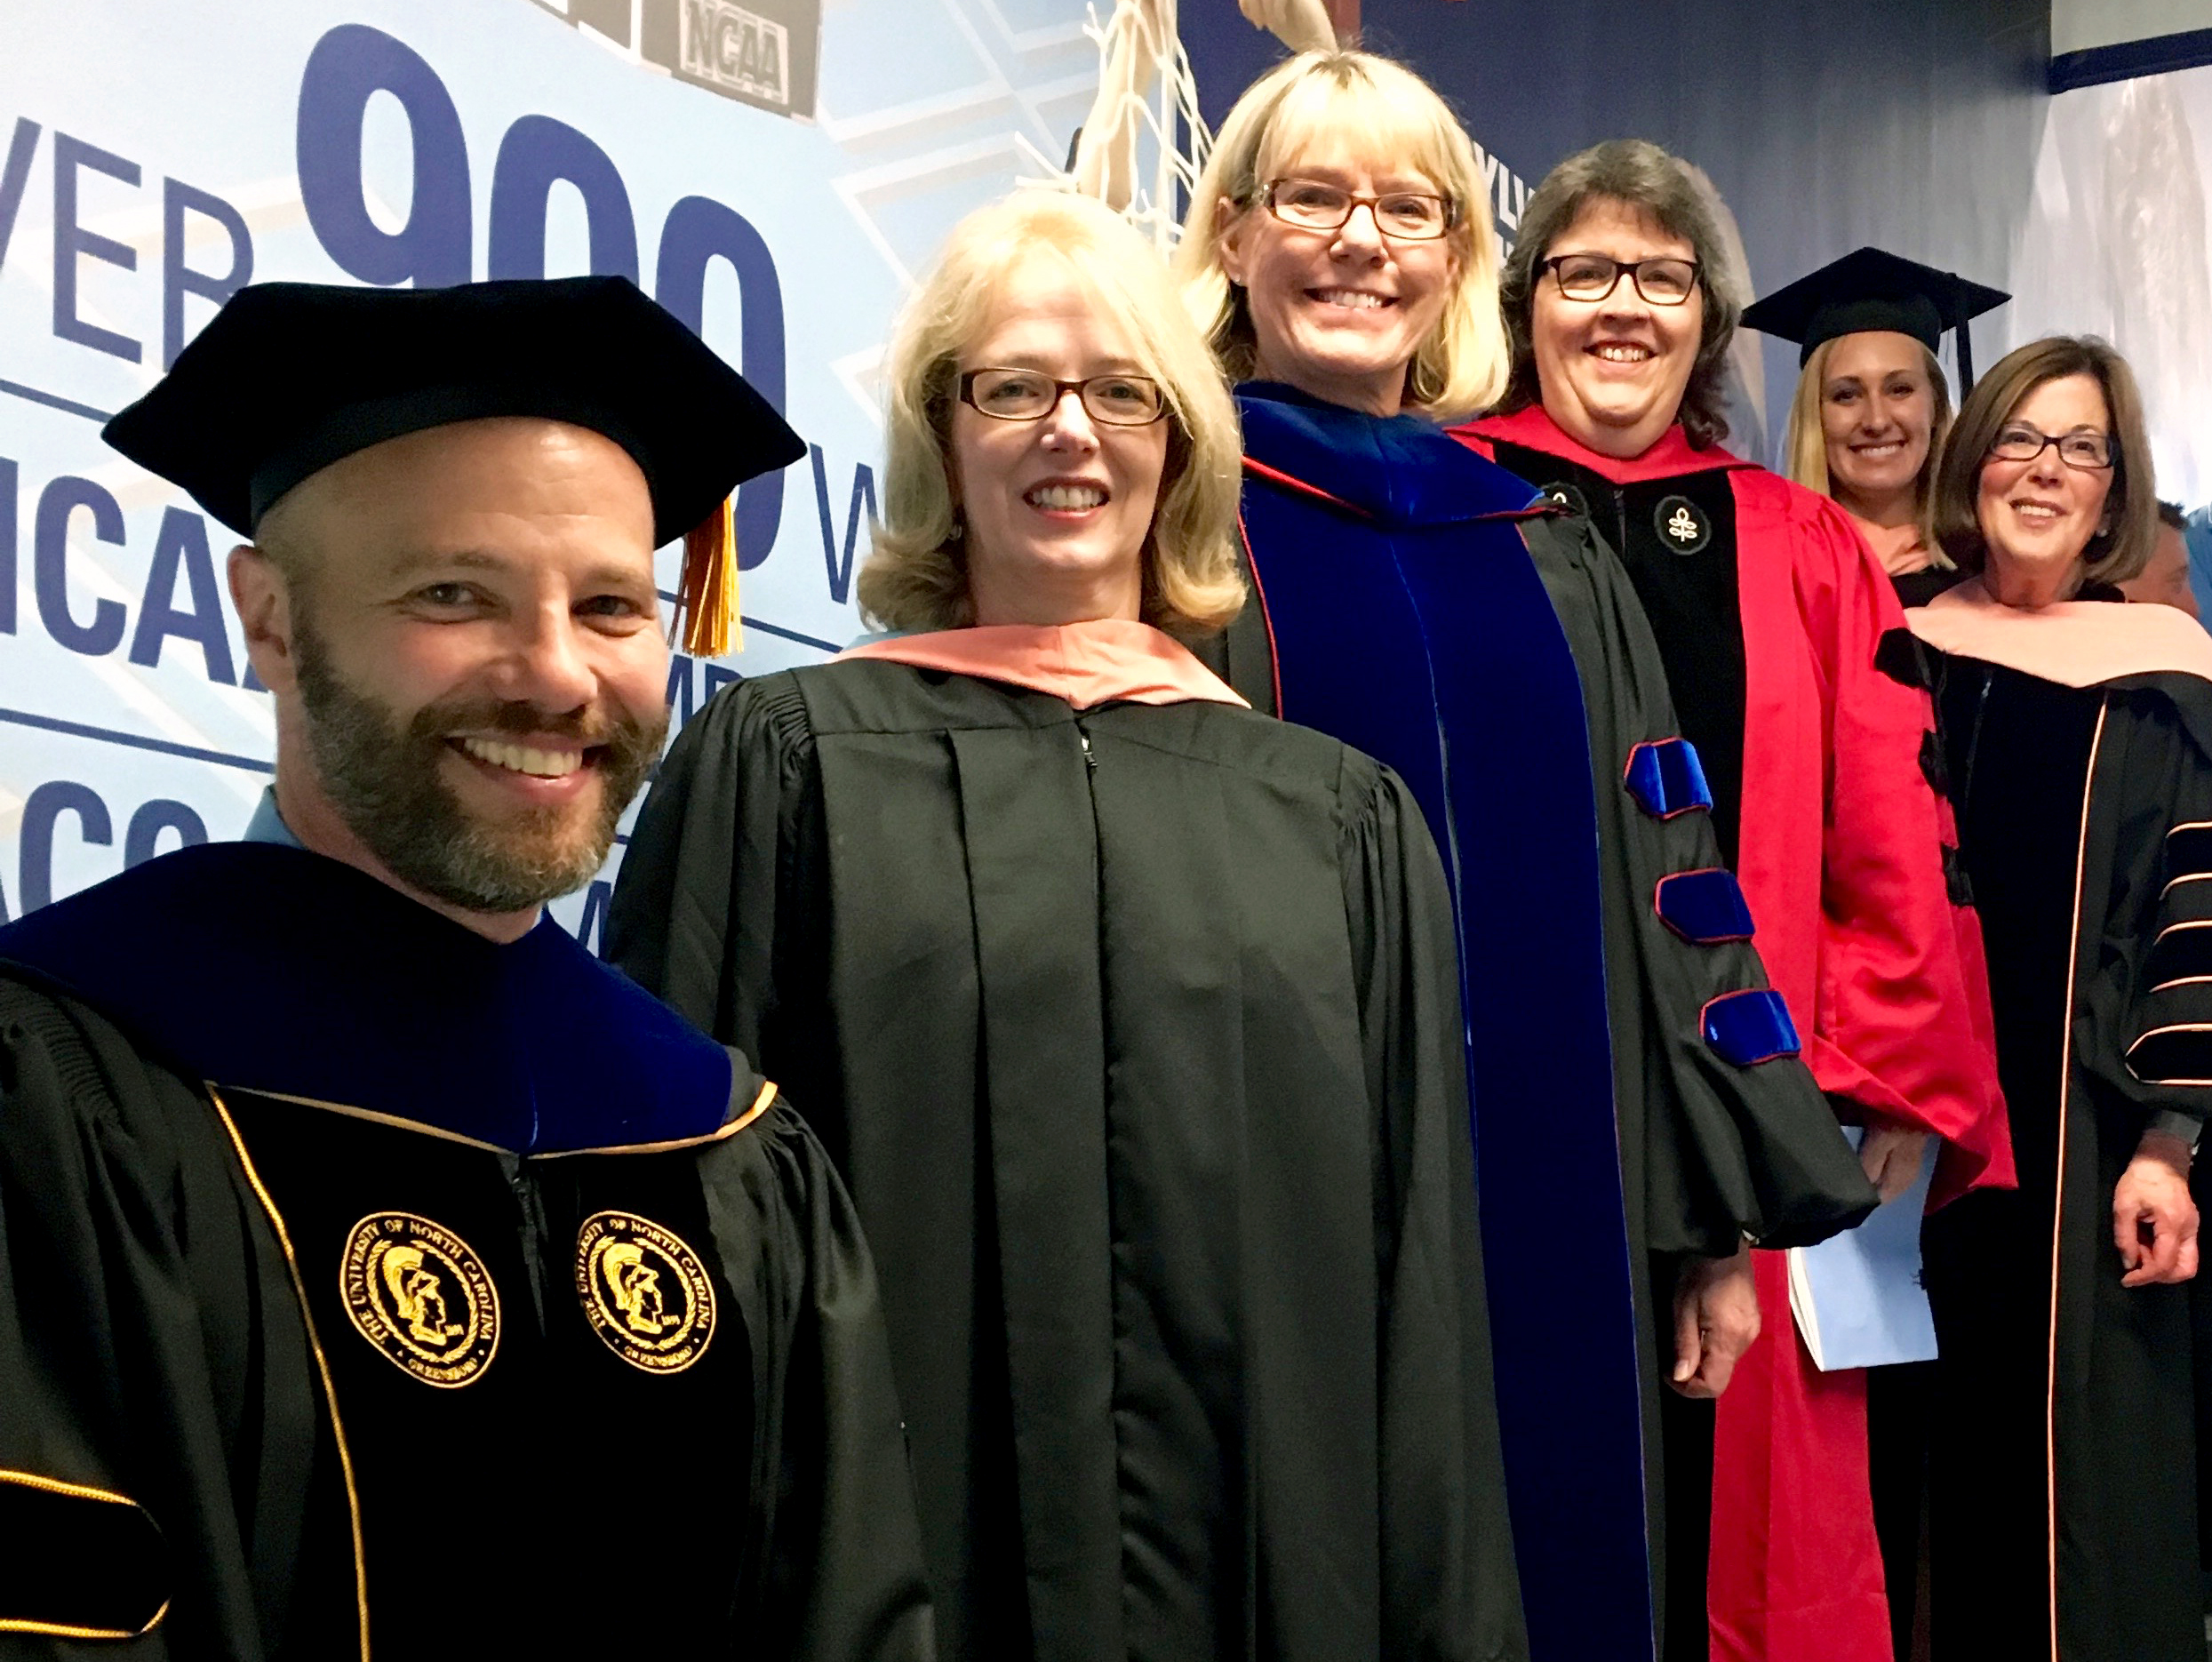 Dr. Nicolet, Paula Brown Stafford, Dr. Halpern, Dr. Linnan, Student Government Co-President Kristin Voltzke and Dean Barbara K. Rimer prepare to take the stage at the School's 2016 Commencement.